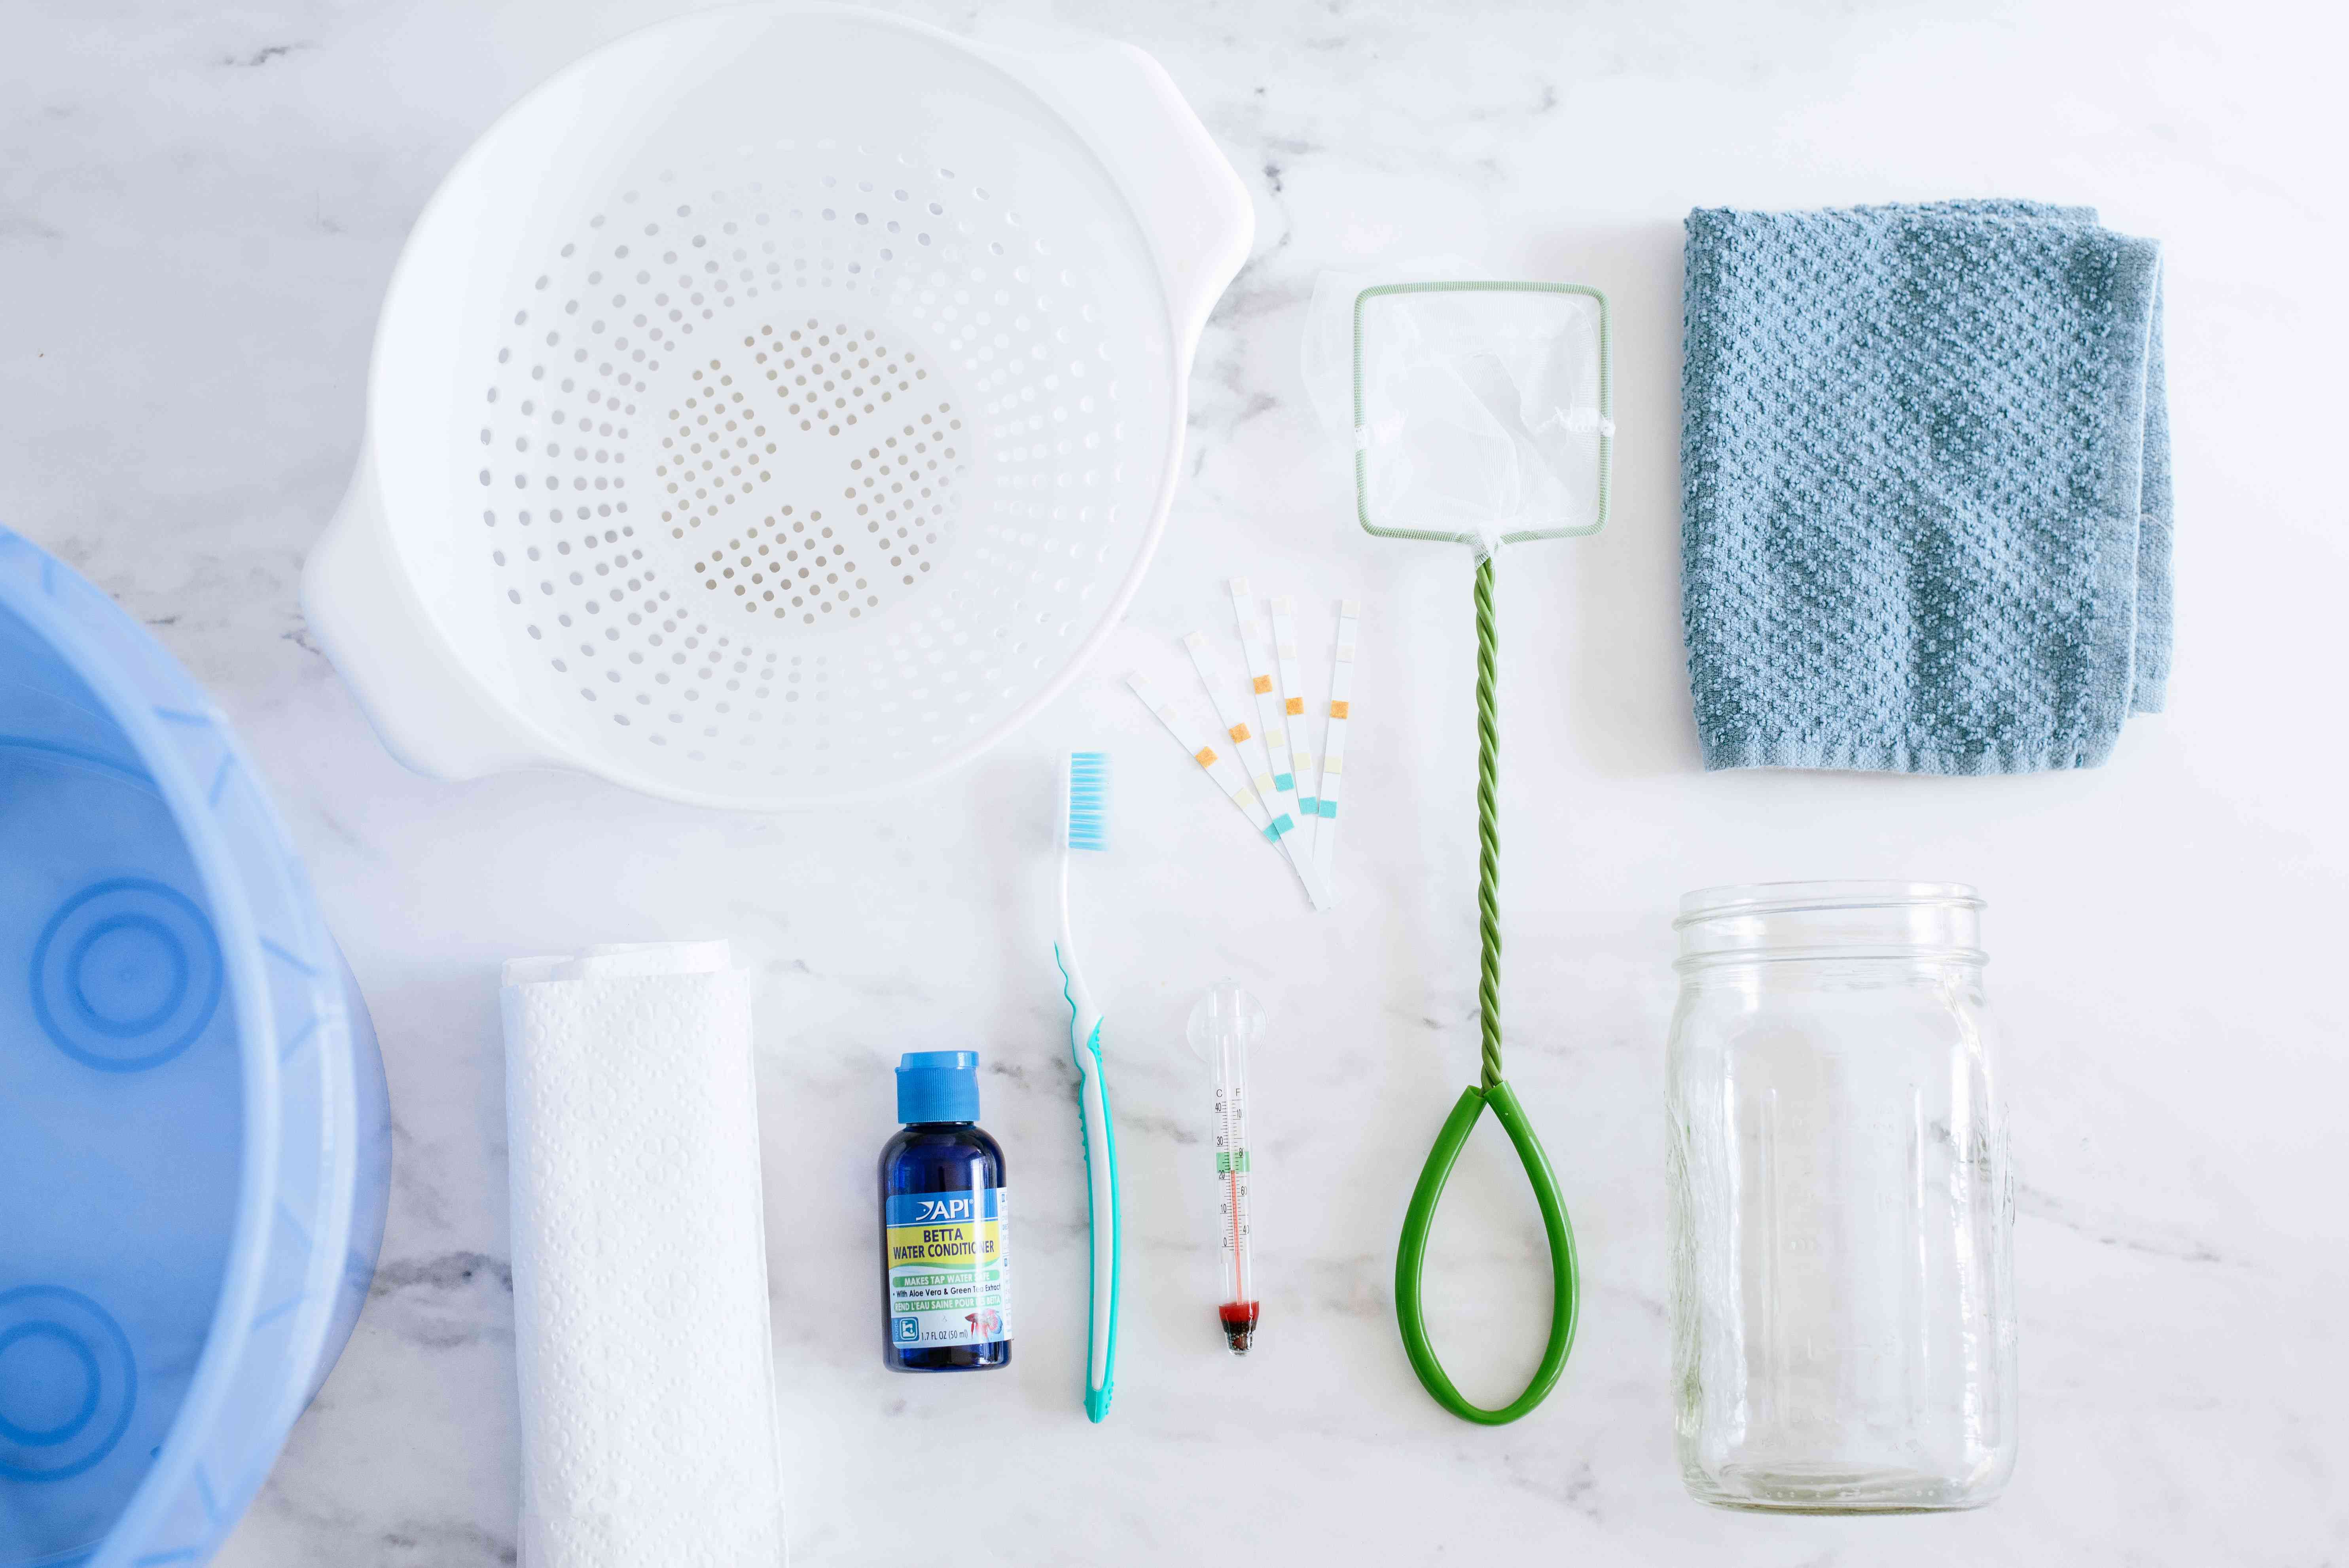 Materials to clean a fishbowl on white marbled surface